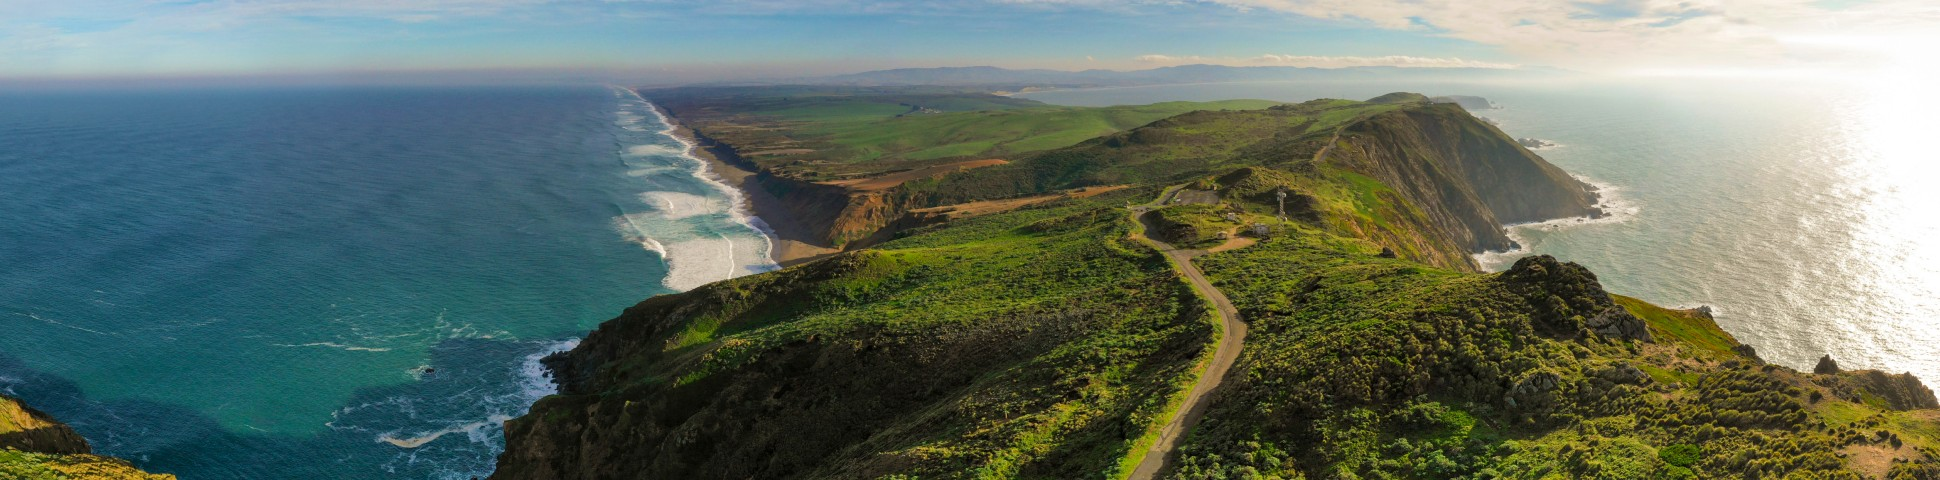 Panoramic view of Point of Reyes in California